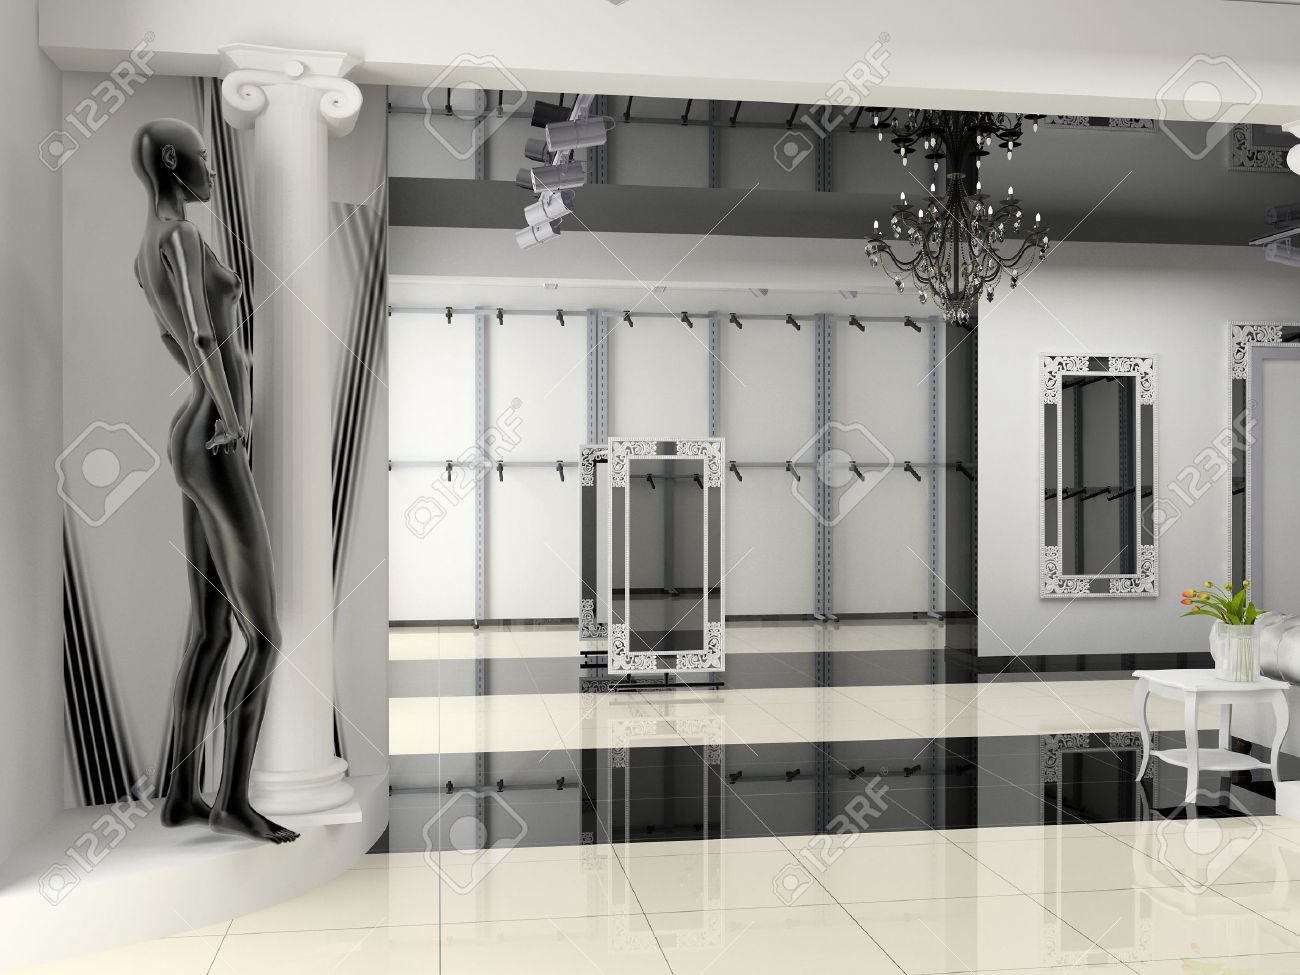 The Modern Shop Interior Design Project 3D Image Stock Photo